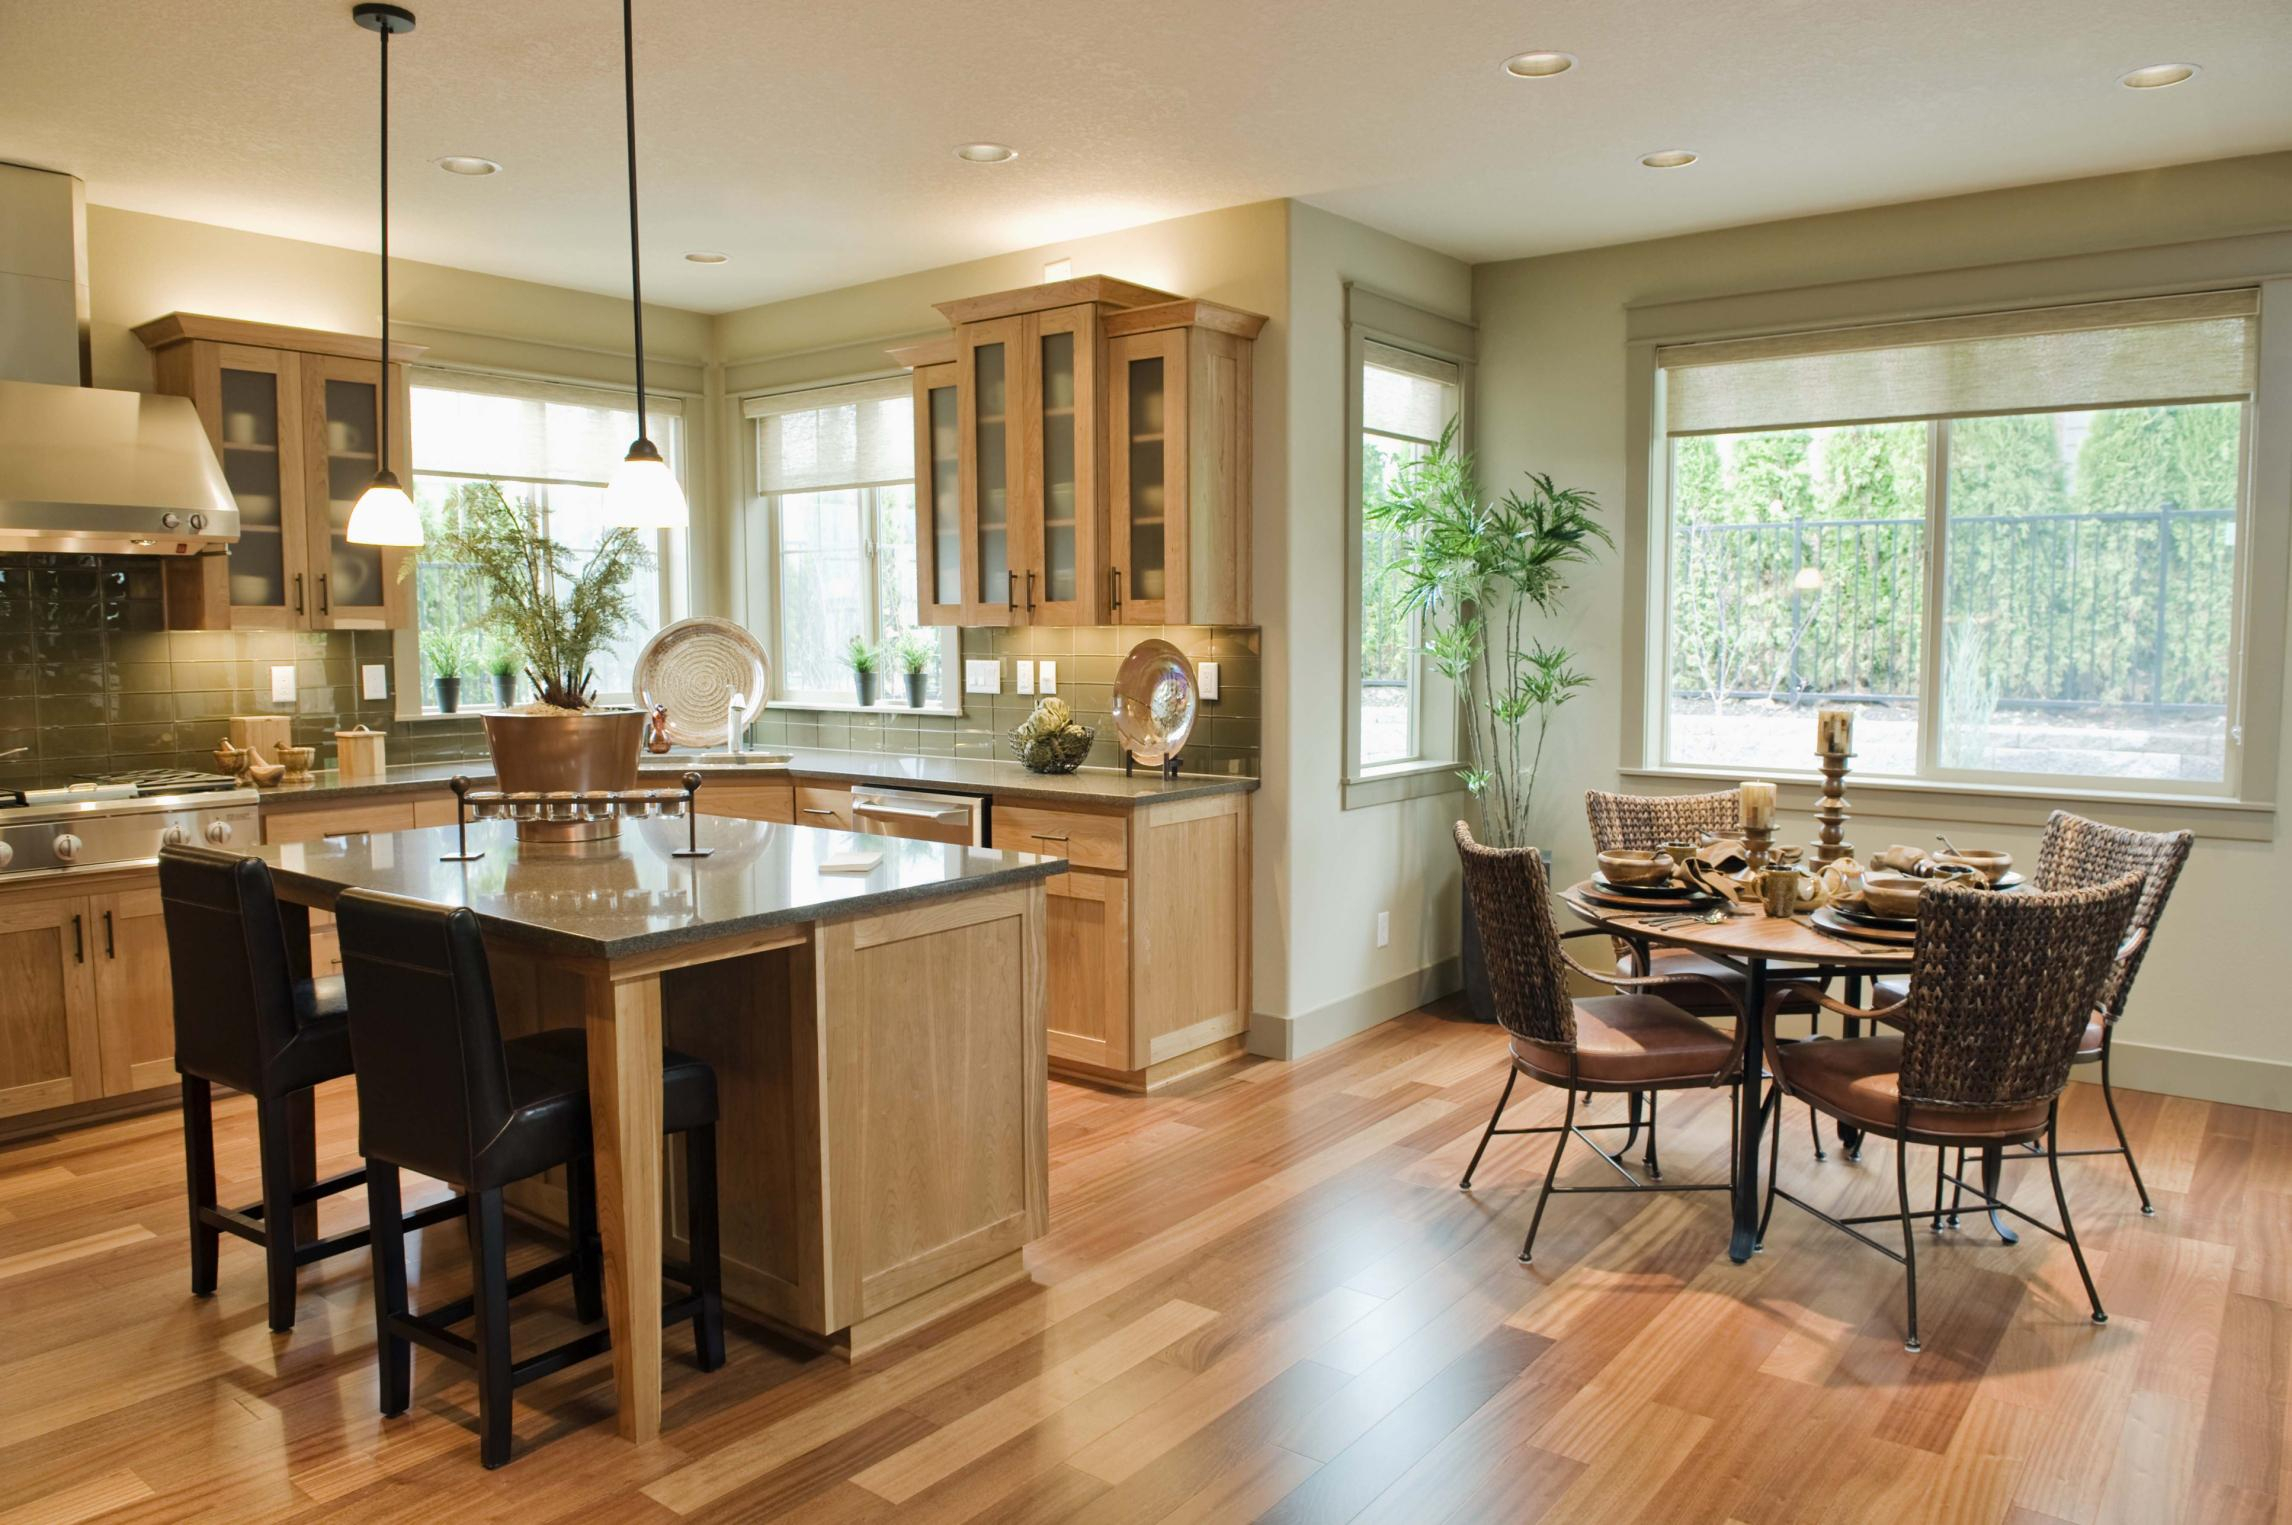 kitchen dining room design ideas photo - 10